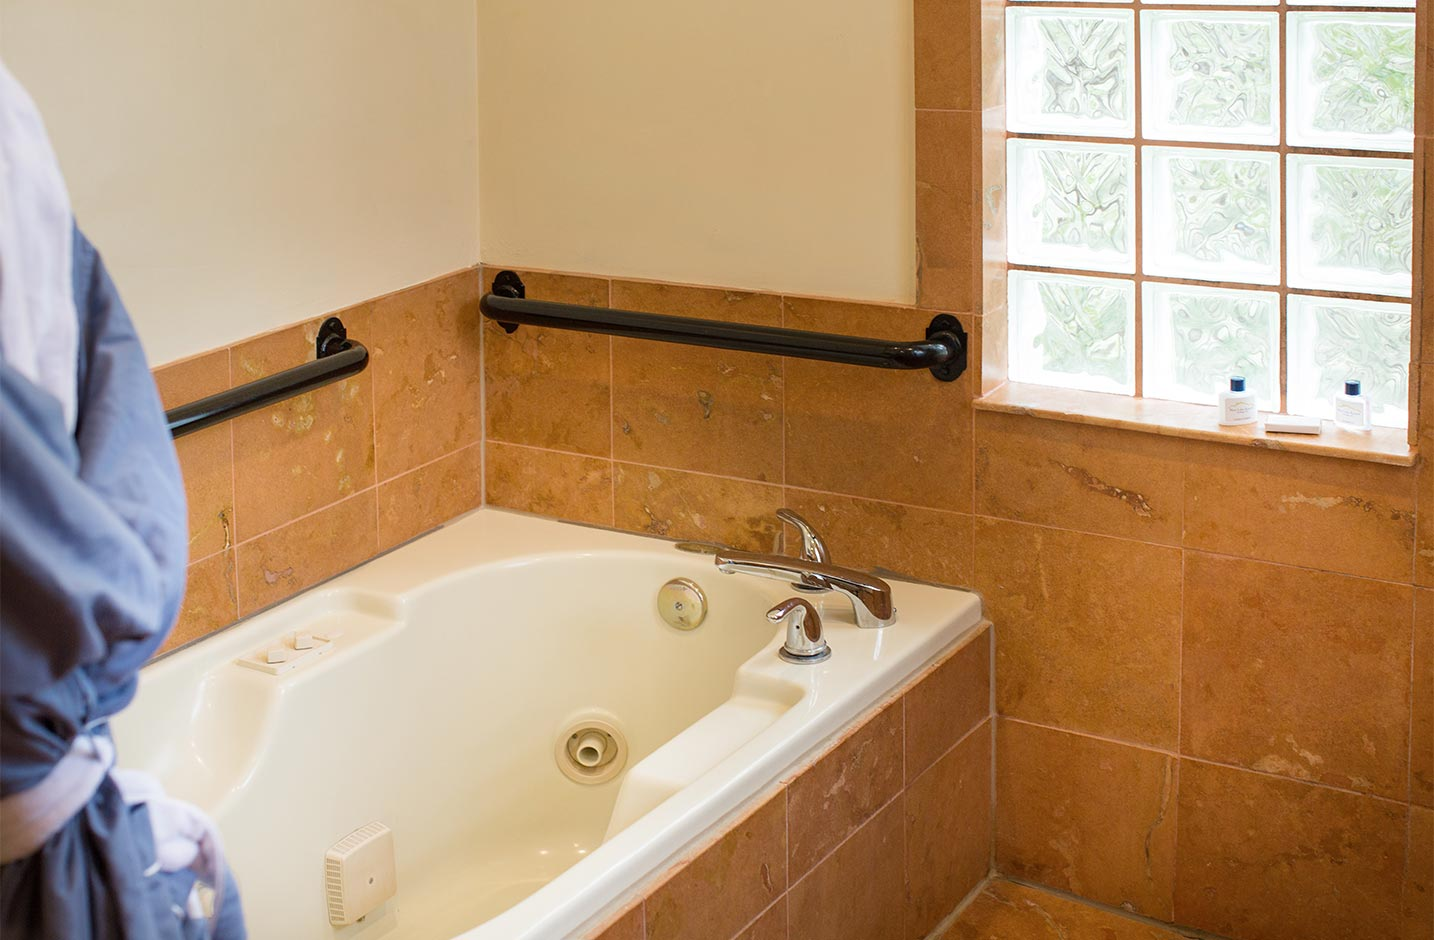 A Whirlpool tub with grab-bars and glass block windows